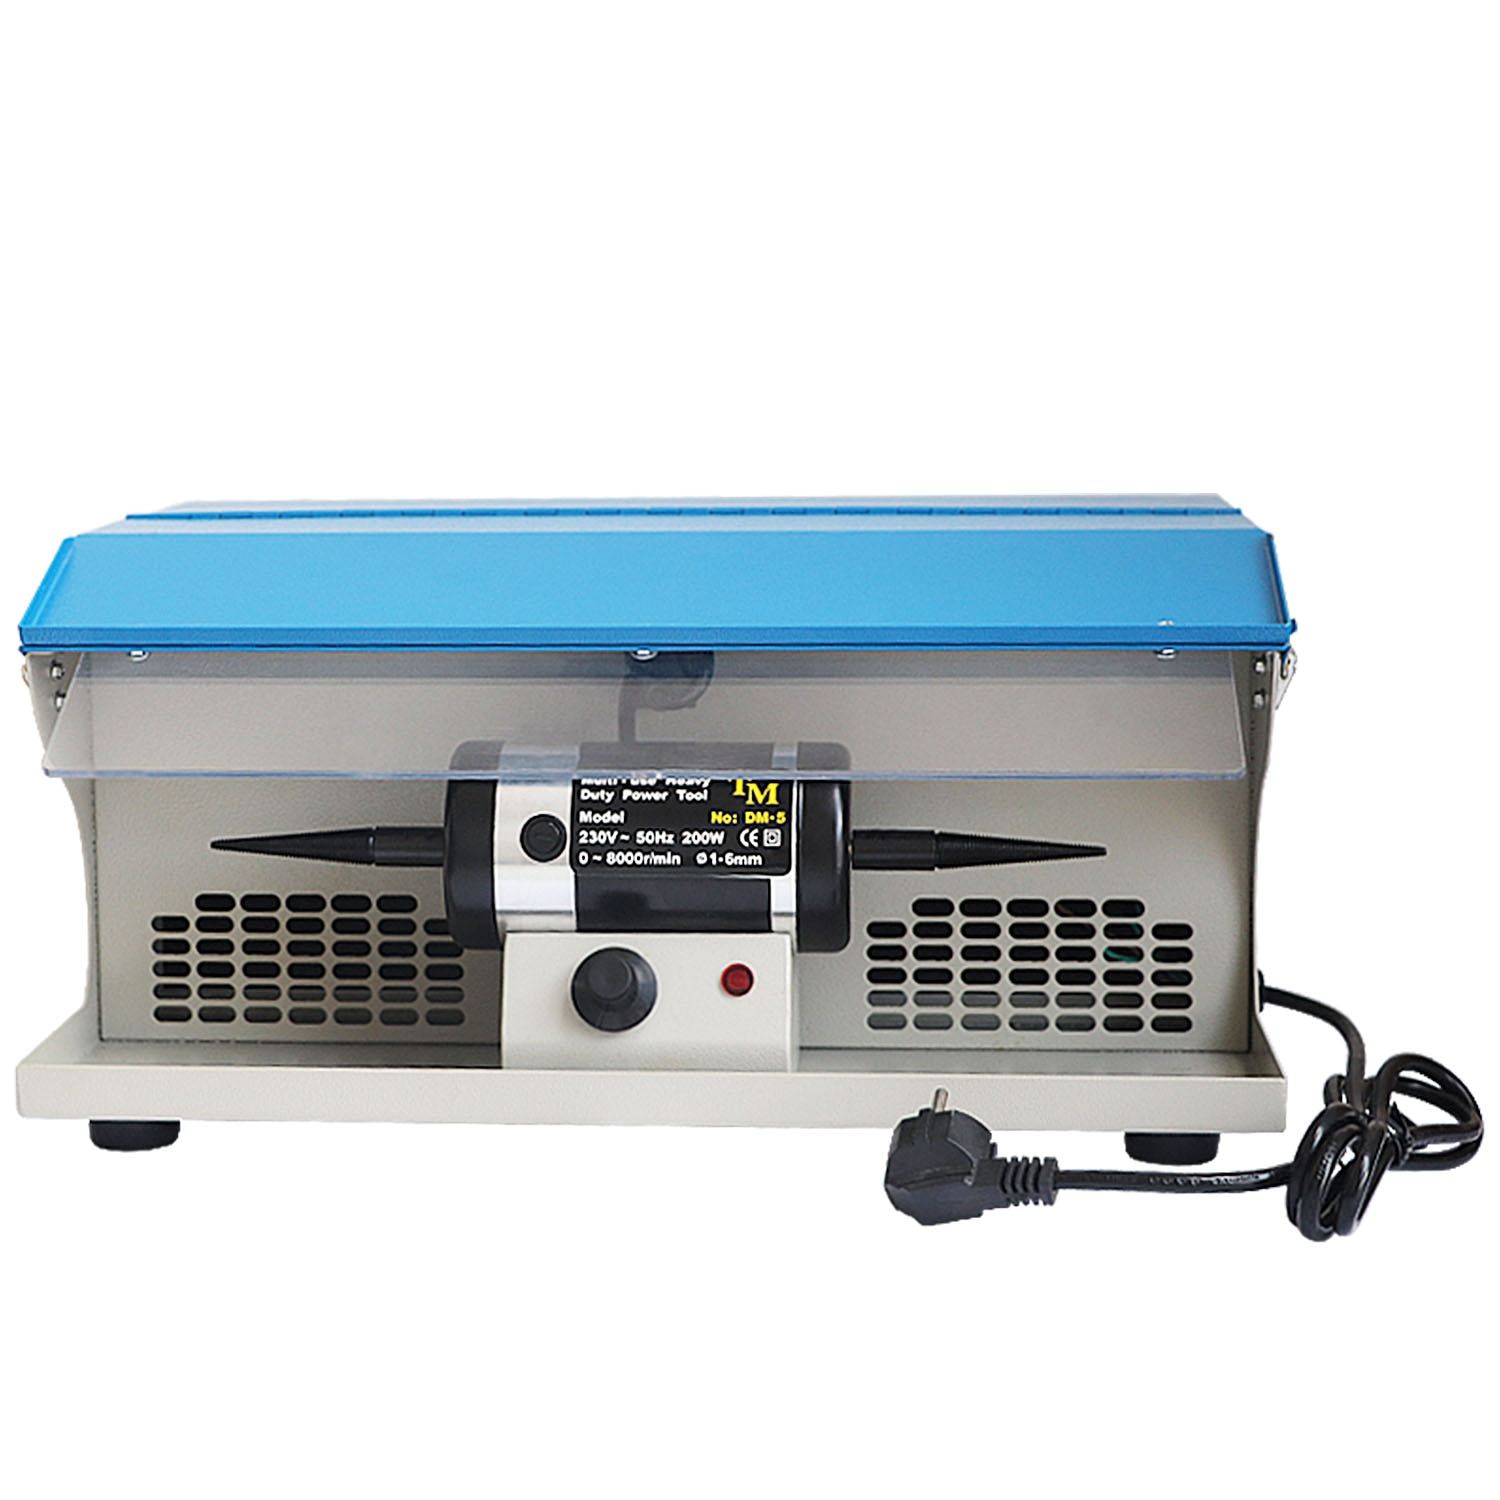 110V/220V DM-5 Dust-Absorbing Polishing Machine With Dust Collector Desktop Double-Headed Cloth Wheel With Lamp Speed Control